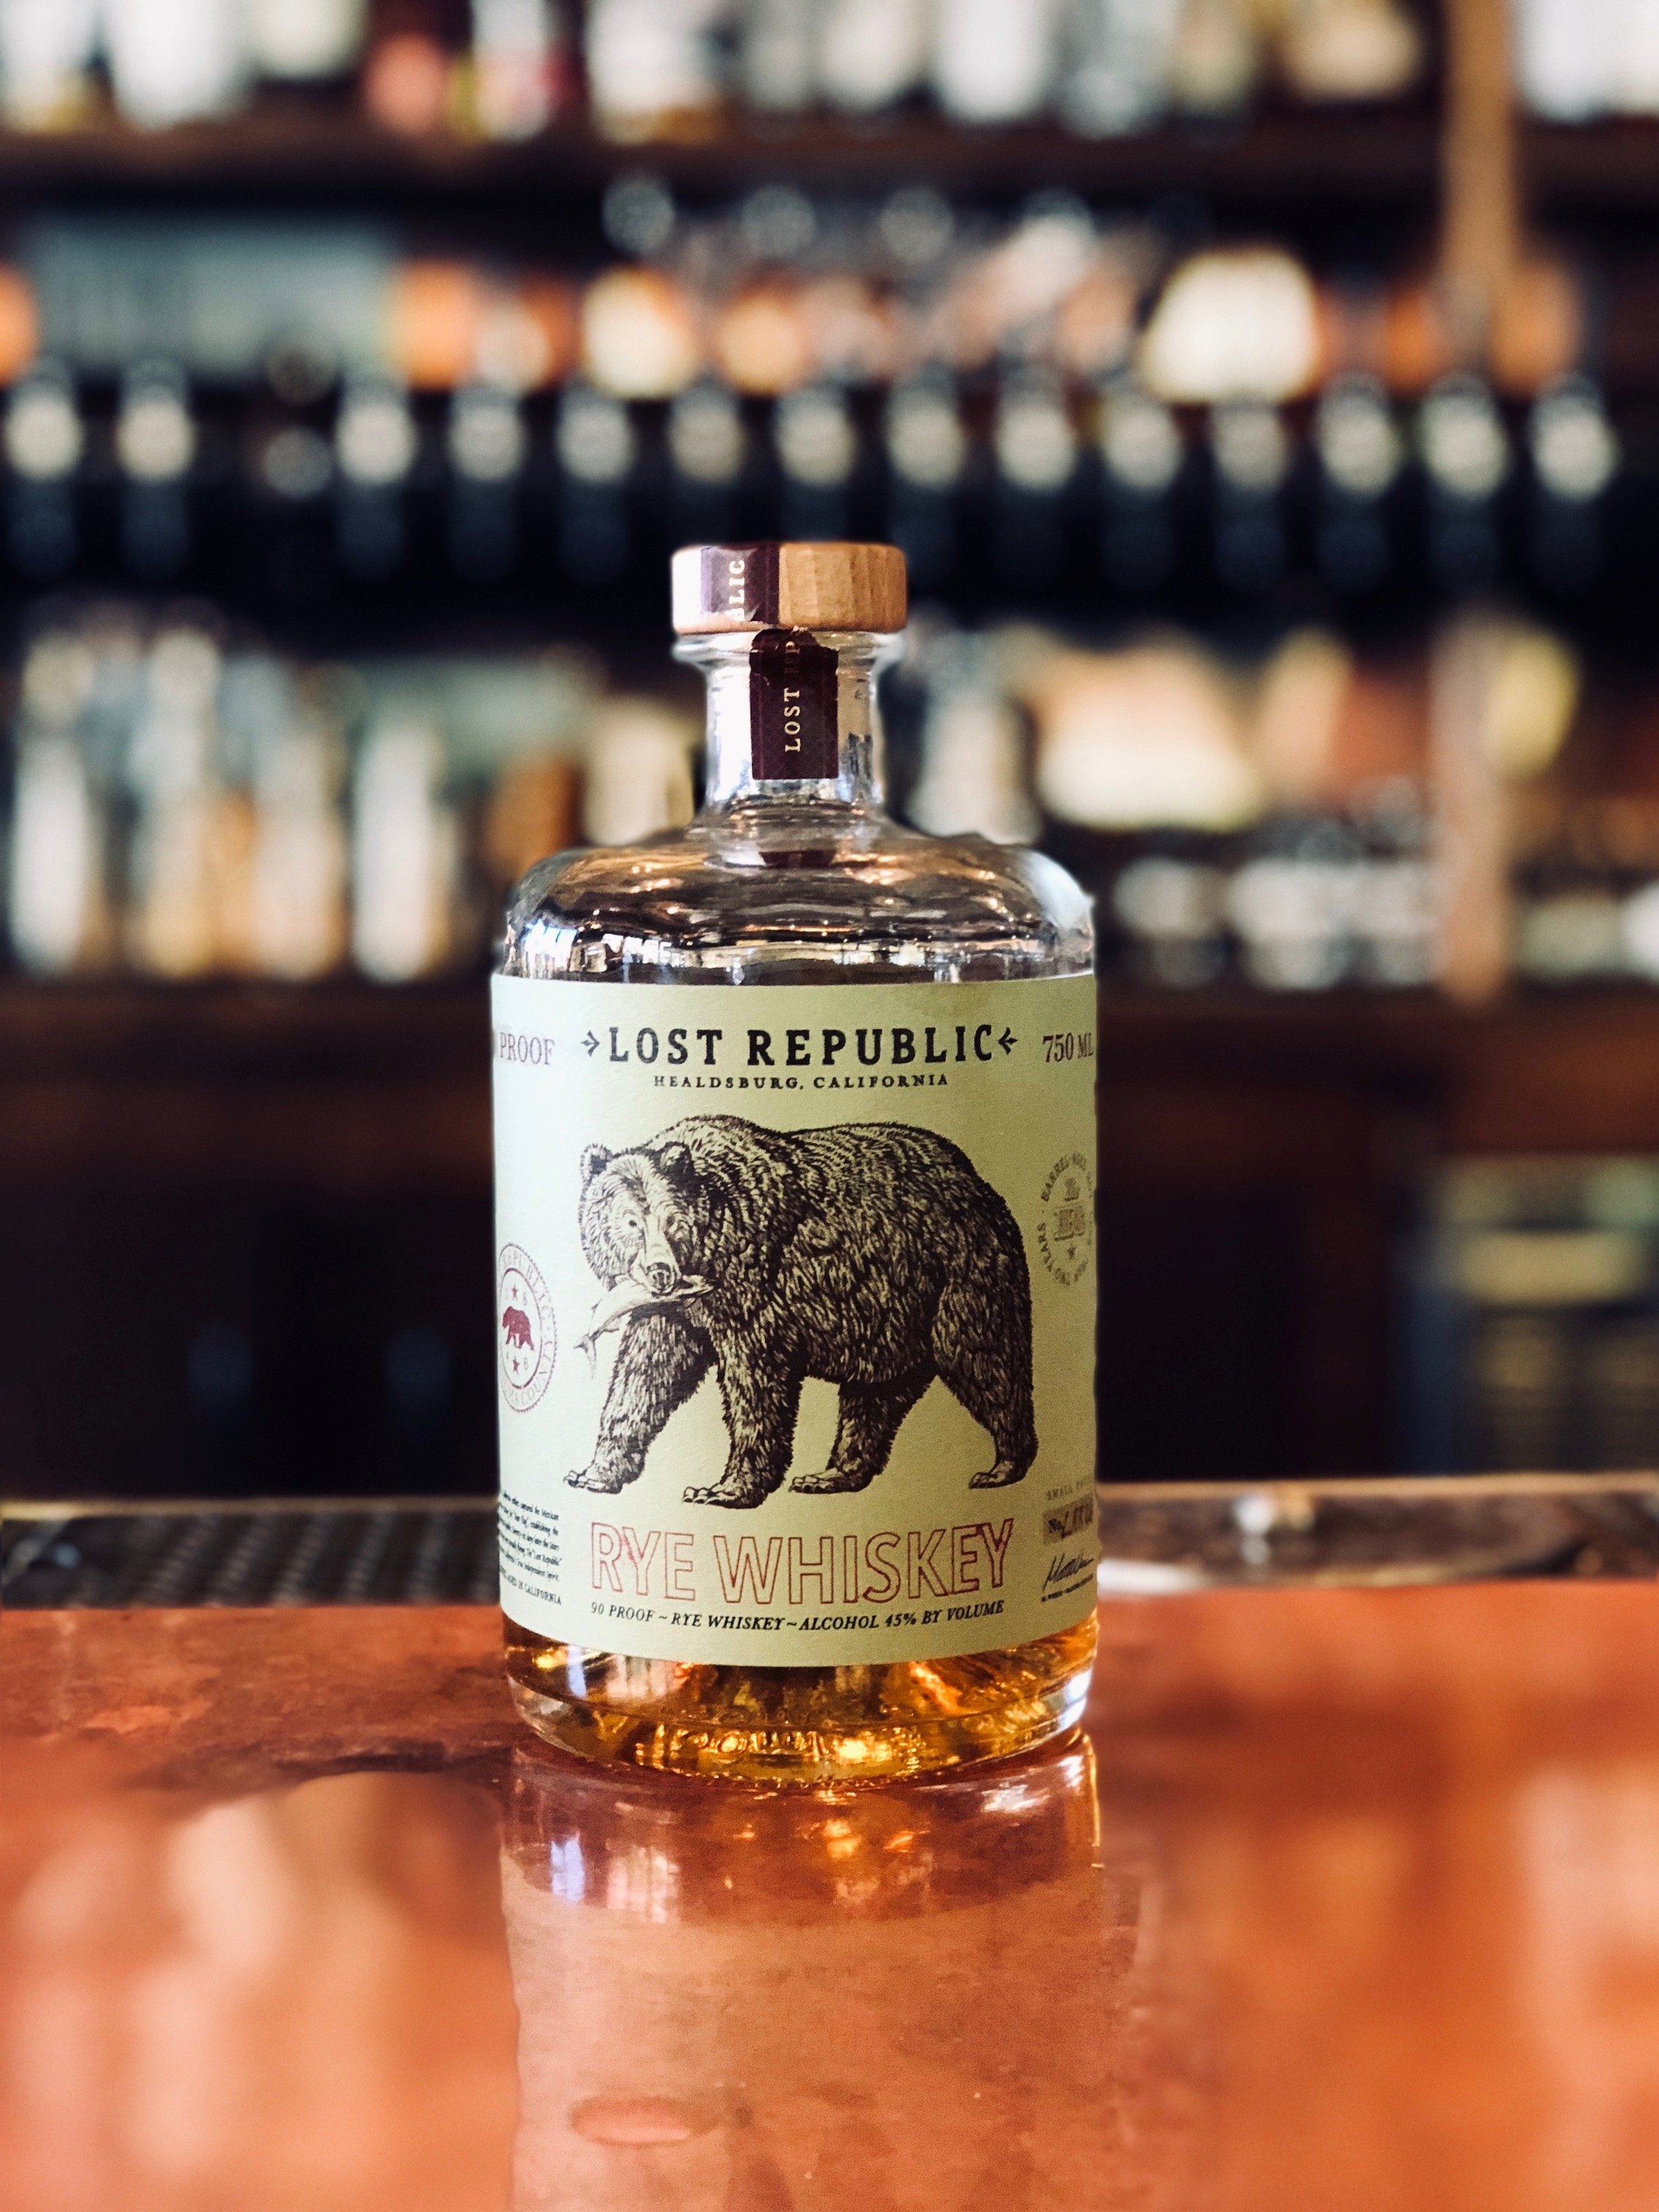 Happy hump day! Need a way to celebrate getting through the first half of the week? Why not come in for Whiskey Wednesday?   .  All whiskeys $10/oz and under are 50% off all day Wednesday!   .  This week we feature Lost Republic's Rye Whiskey. Lost Republic hails straight from Healdsburg, CA where two born and raised Sonoma County guys decided to make their dreams of distilling a reality. With their straight rye whiskey you'll note hints cherries, tobacco, and lemon zest on the nose and enjoy a sweet and spicy balance of flavors including raspberries, toffee, cloves and ginger on the palate. Expect to come away with a lasting taste of vanilla and a memorable whiskey you'll love.